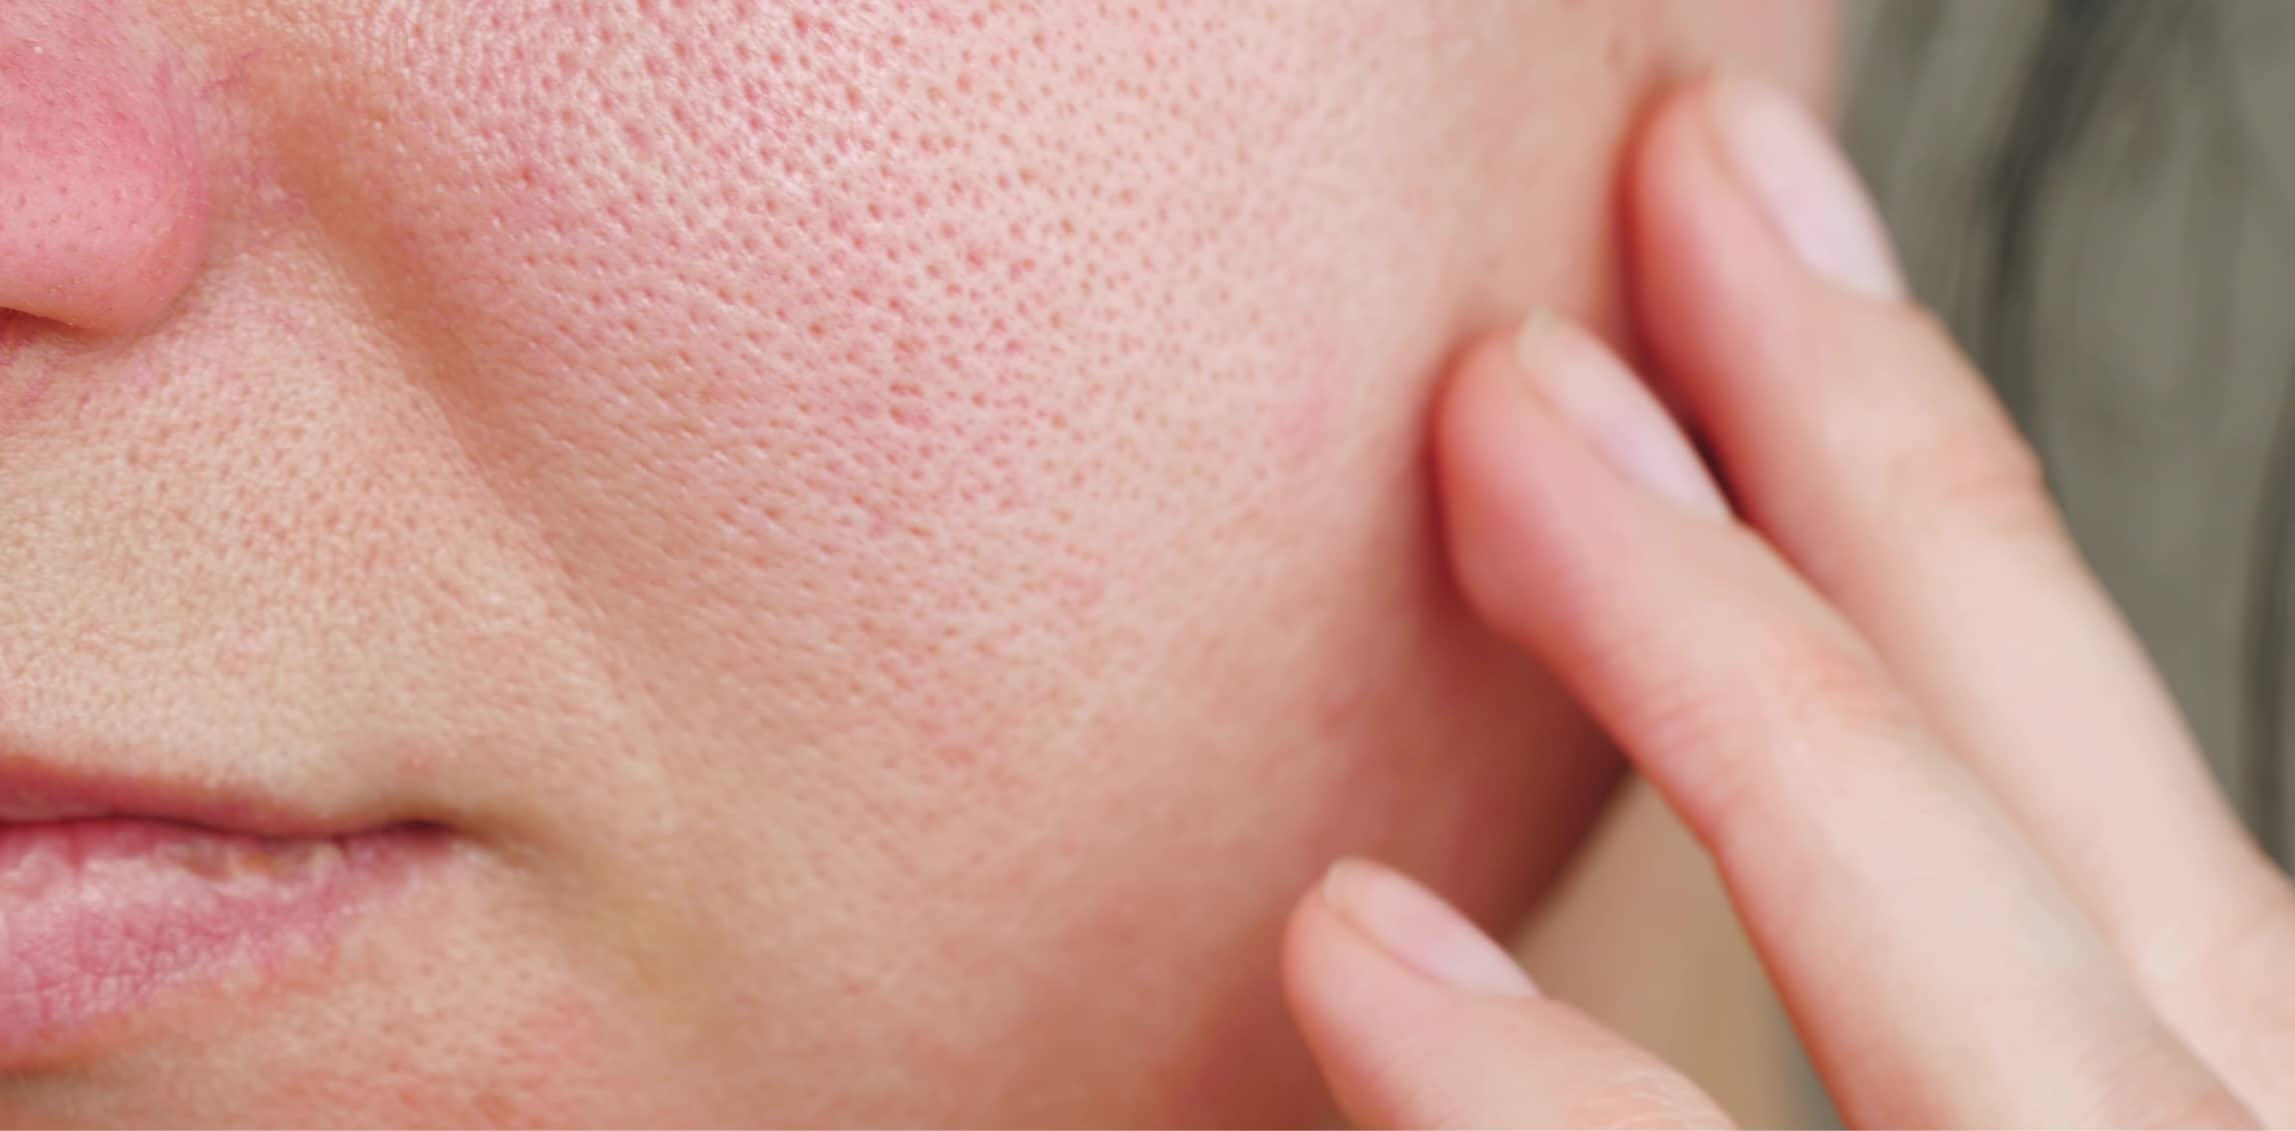 Enlarged Pores